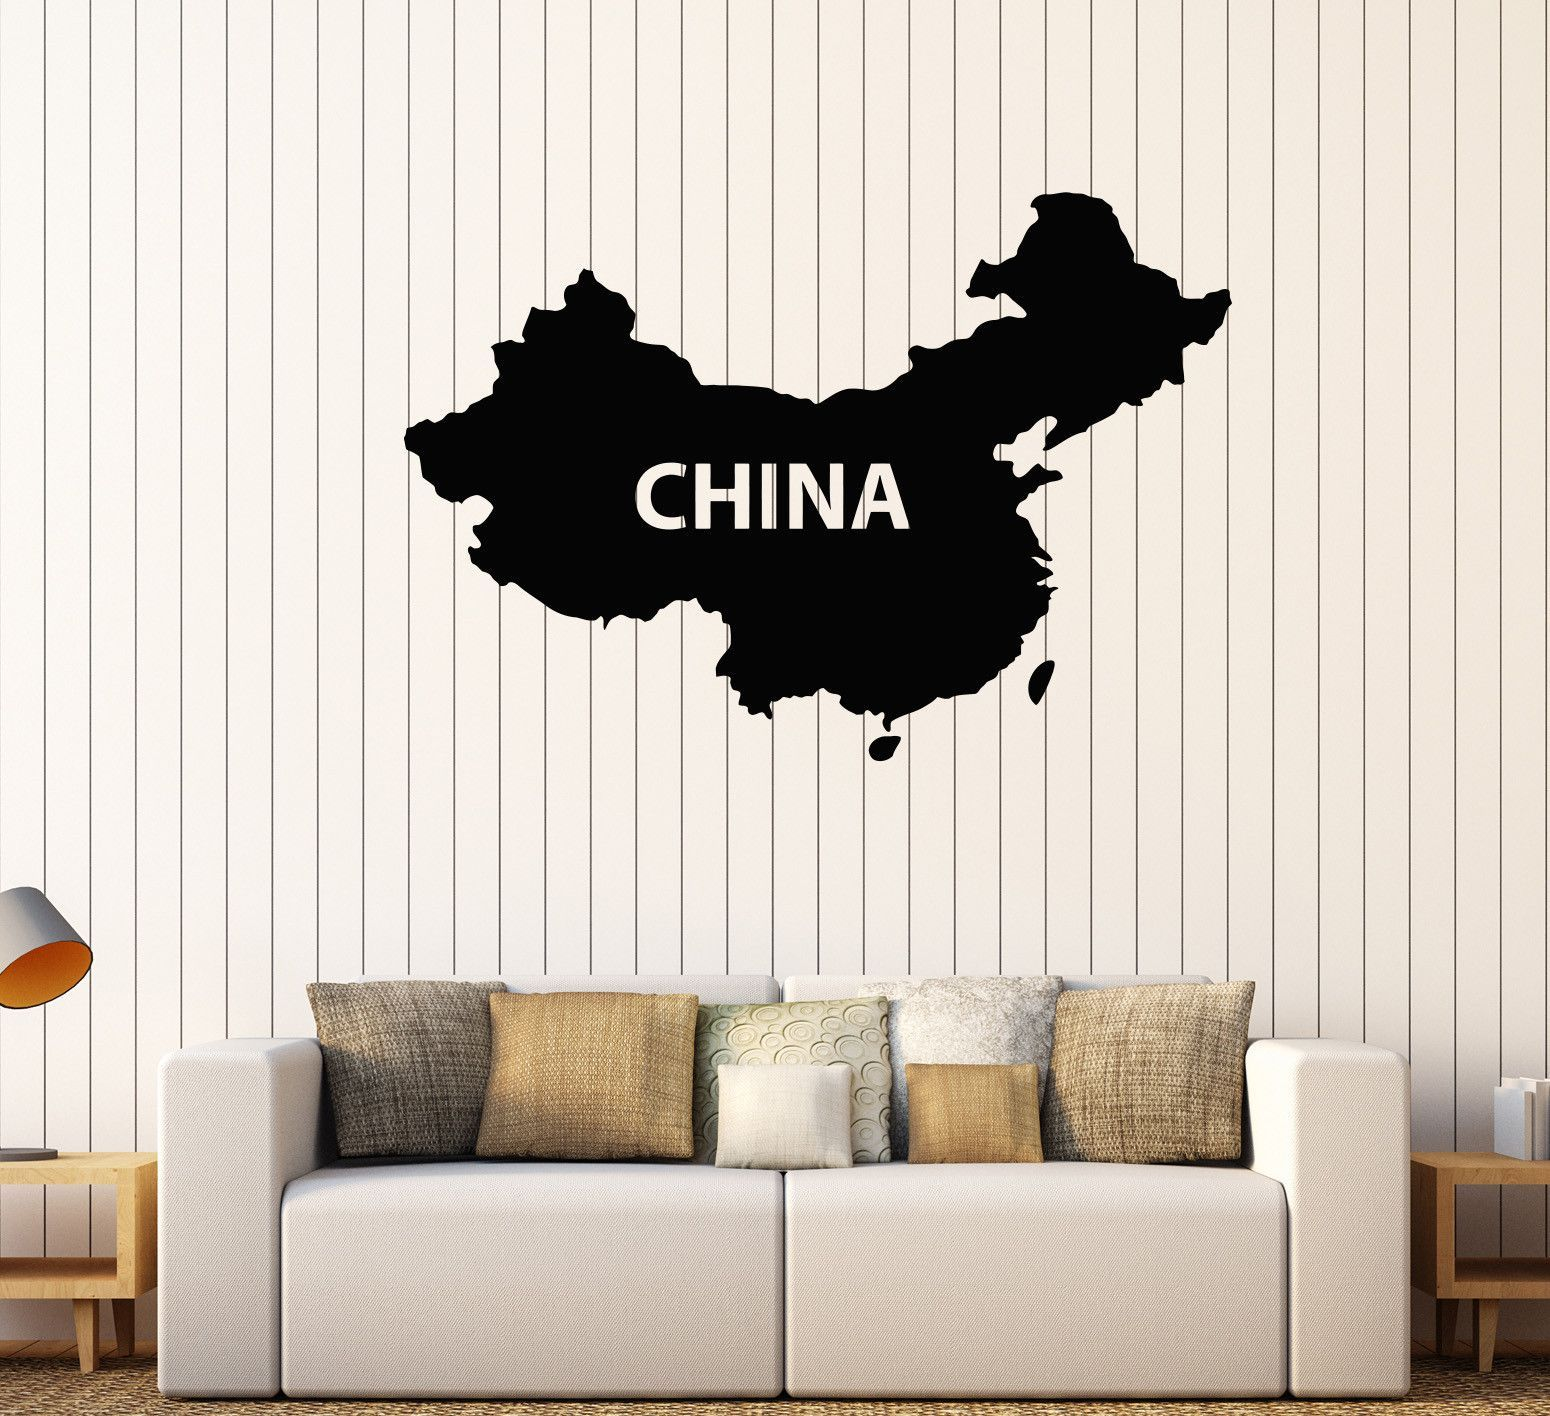 Vinyl Wall Decal China Map Chinese Asian Decor Stickers Mural - Vinyl wall decals asian